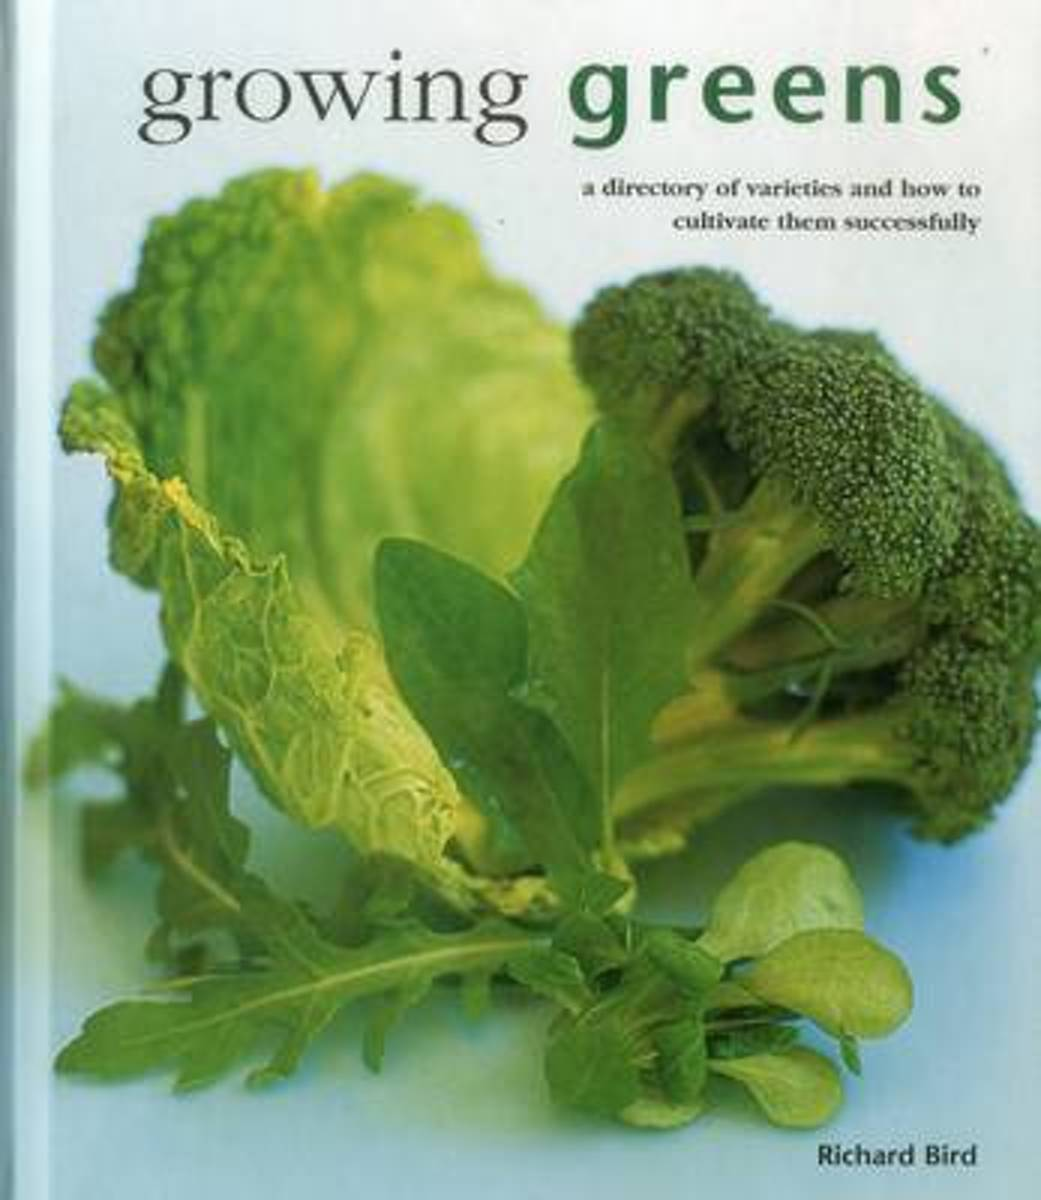 Growing Greens